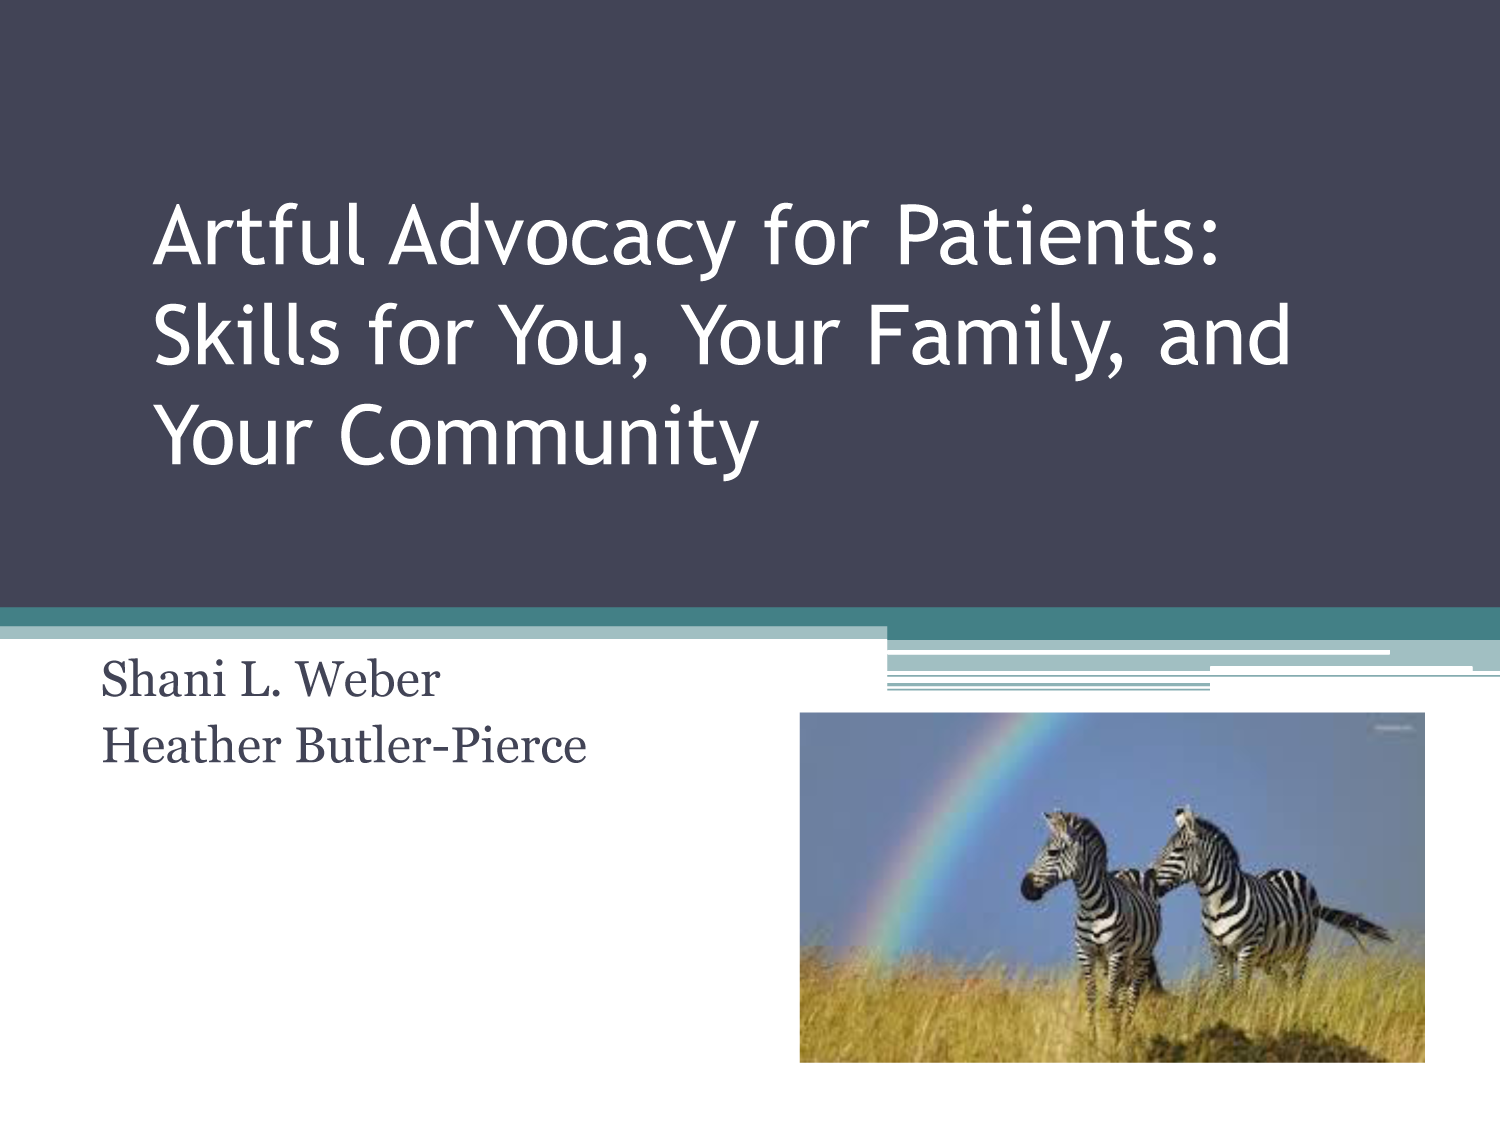 Artful Advocacy - Shani Weber and Heather Butler-Pierce